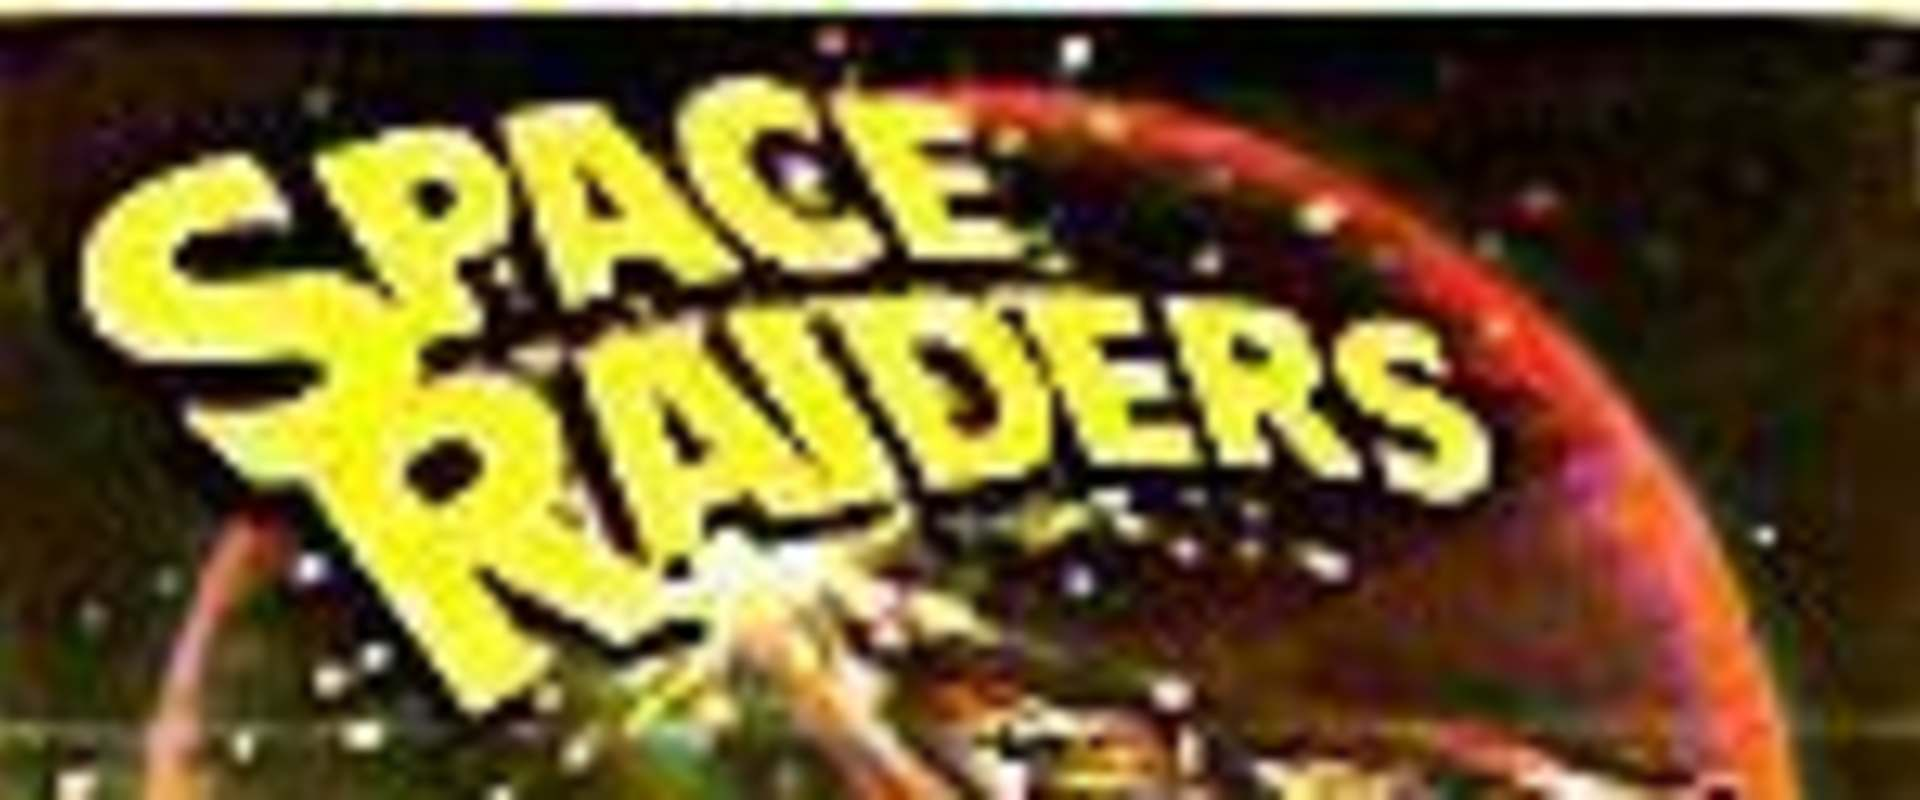 Space Raiders background 2